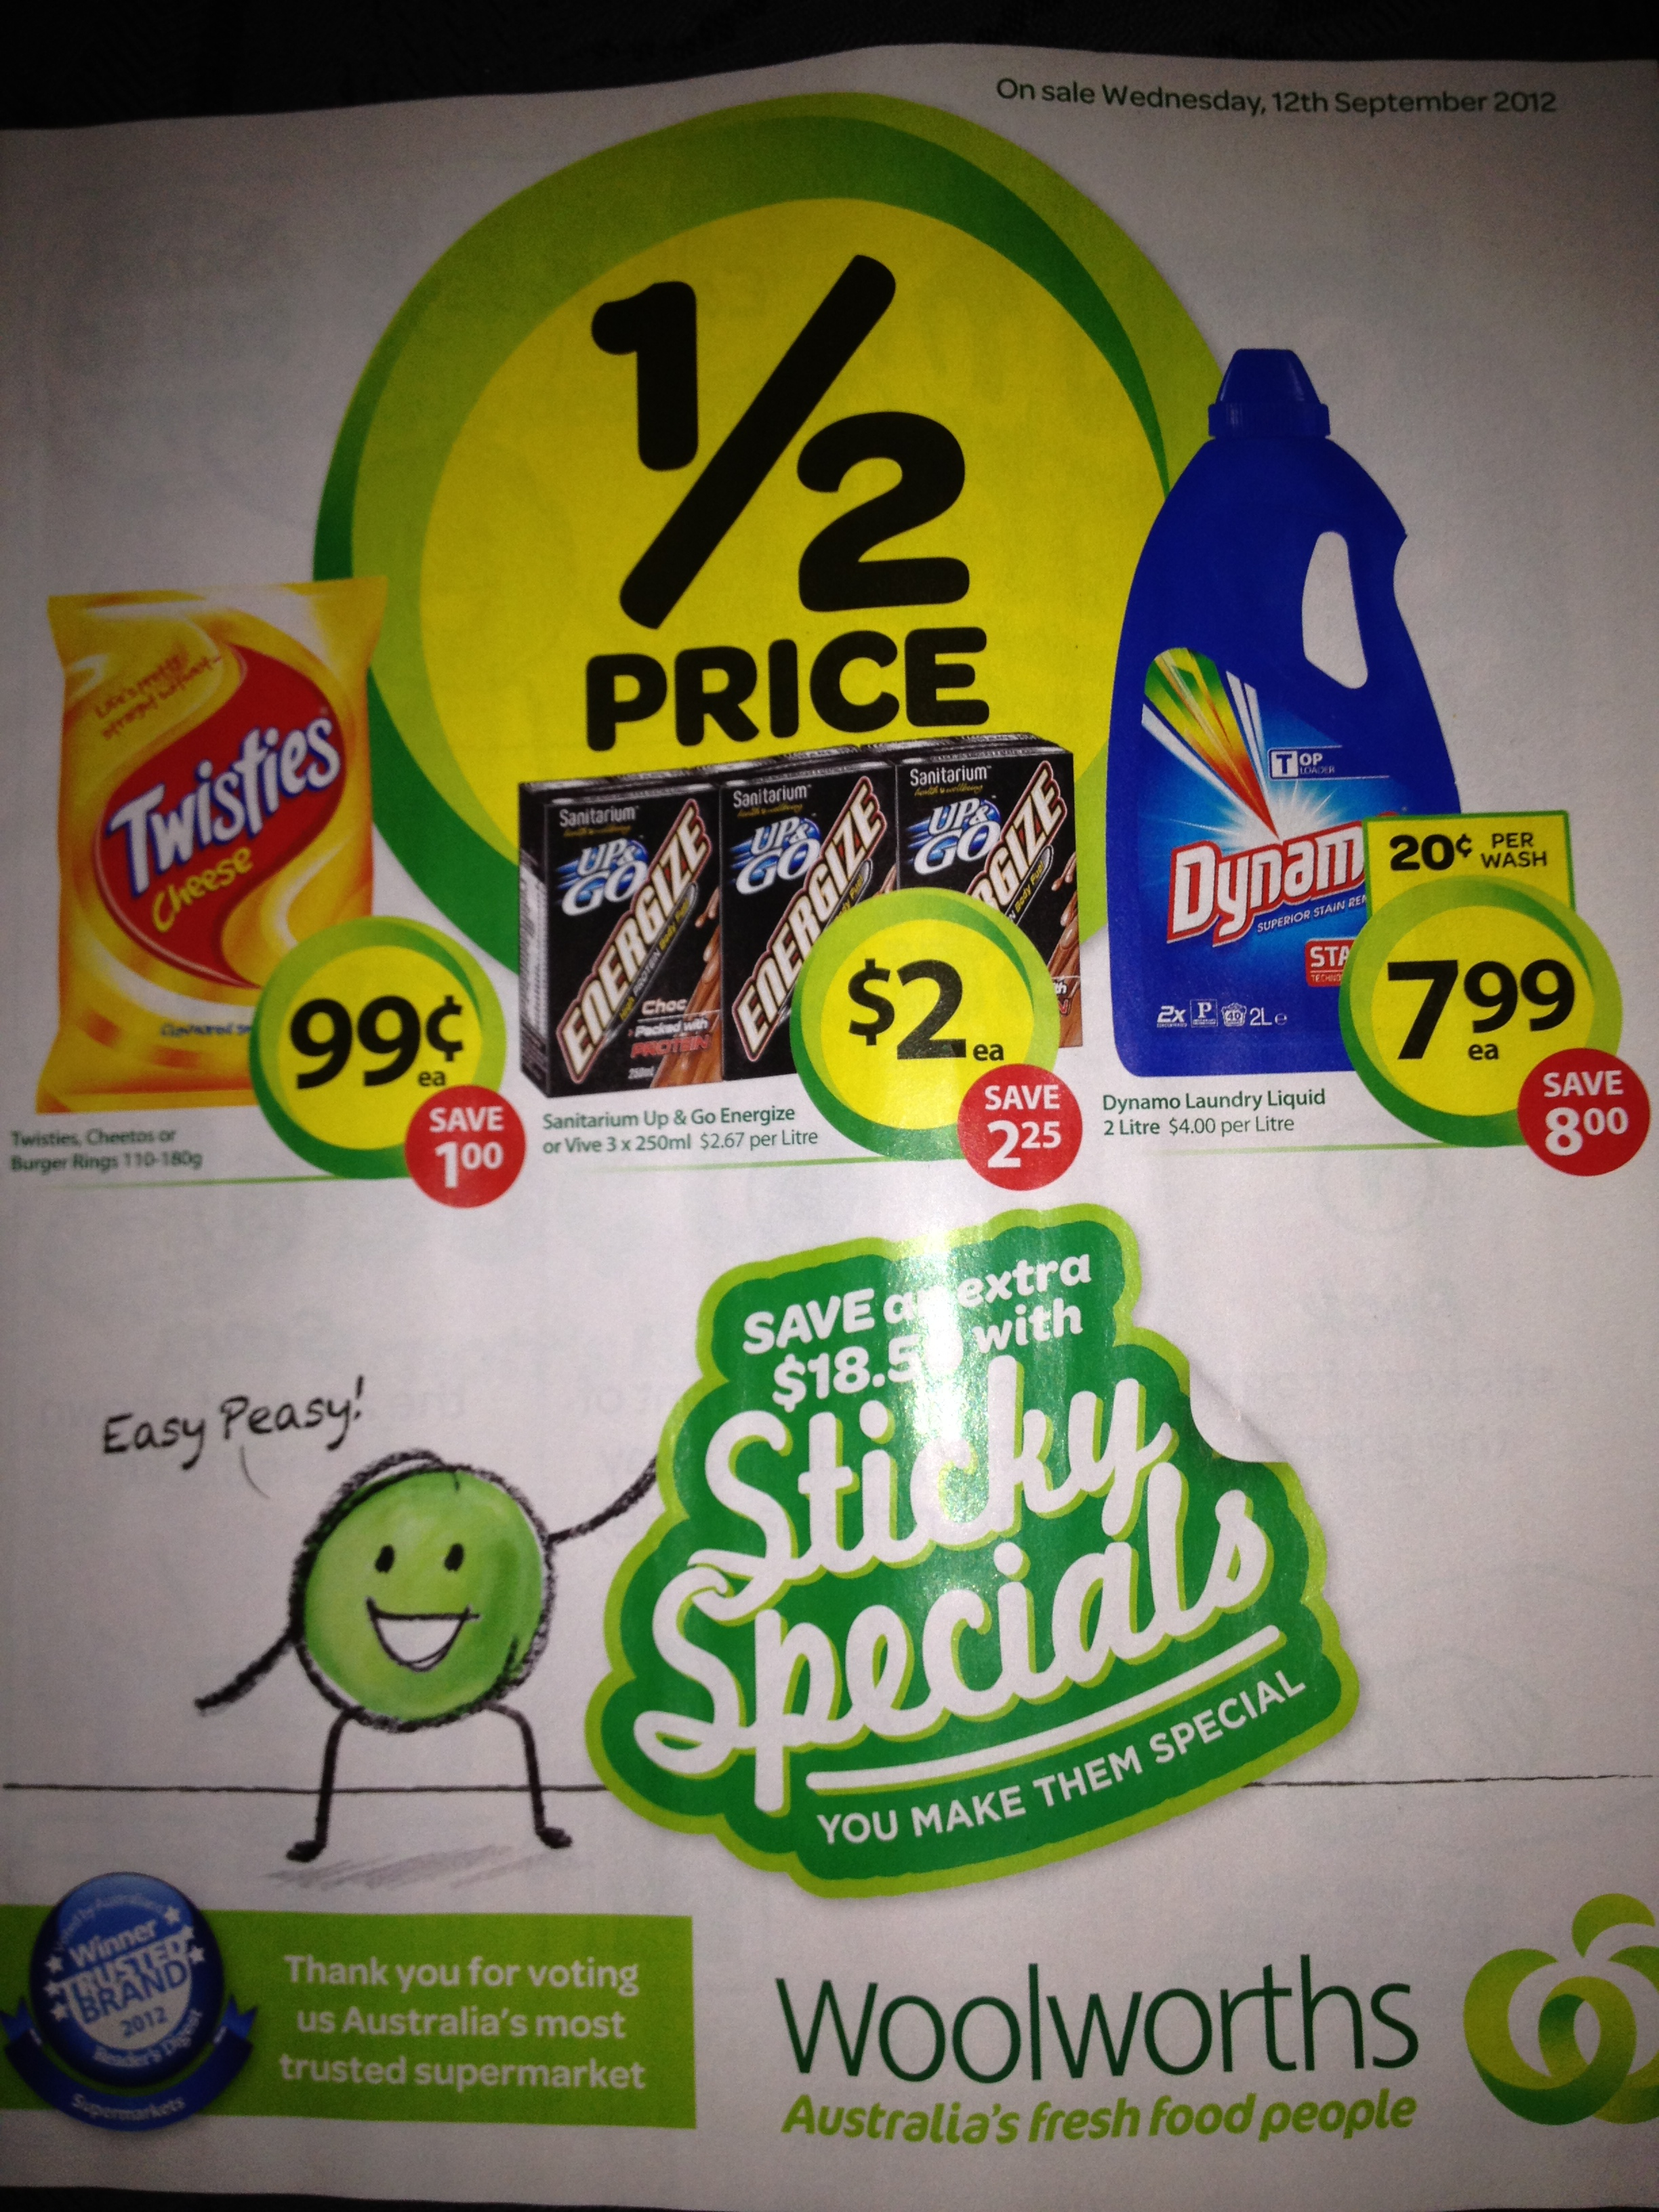 Woolworths strategy